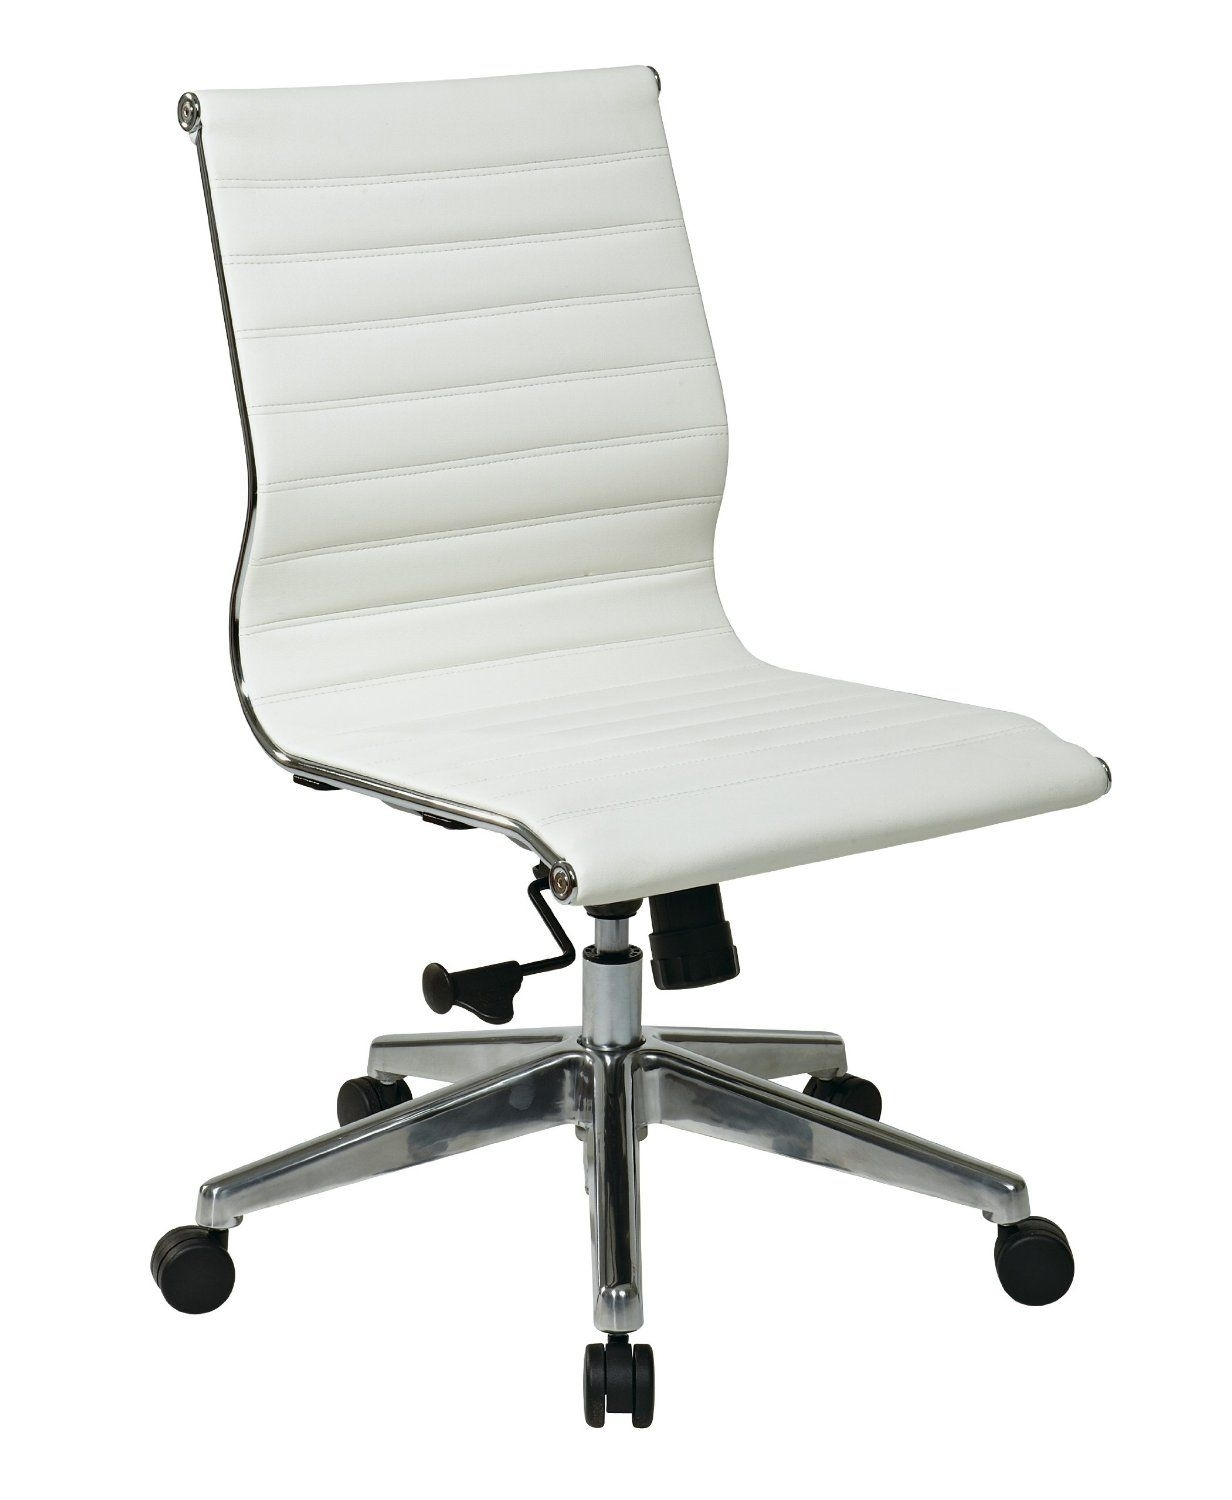 White Leather Desk Chairs Ideas On Foter